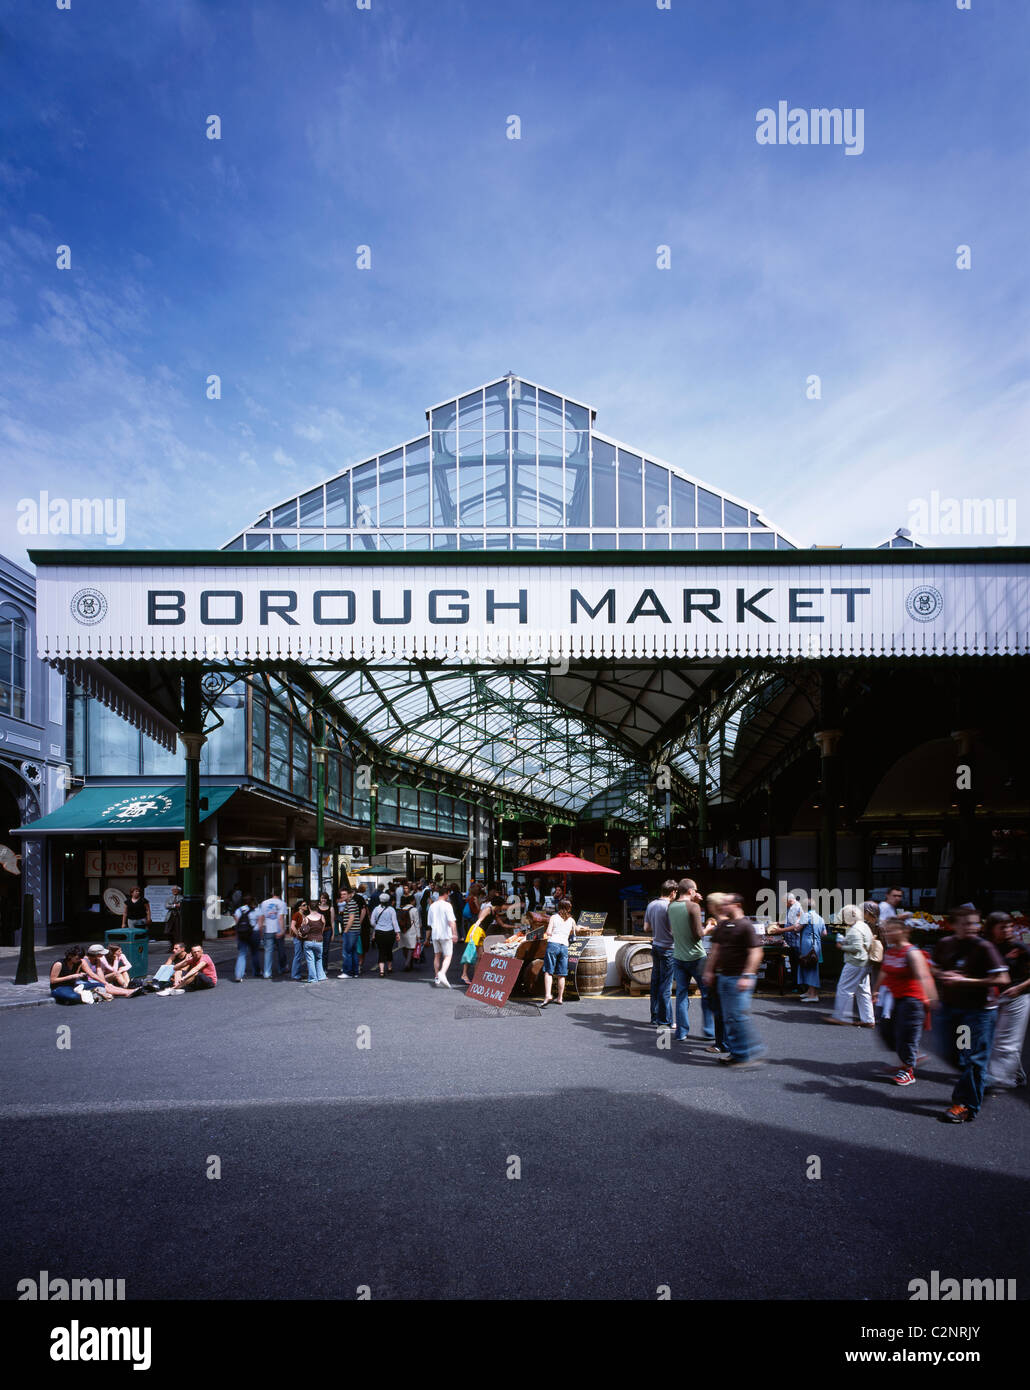 Borough Market, London. Bedale Street Entrance. 1851 - Stock Image